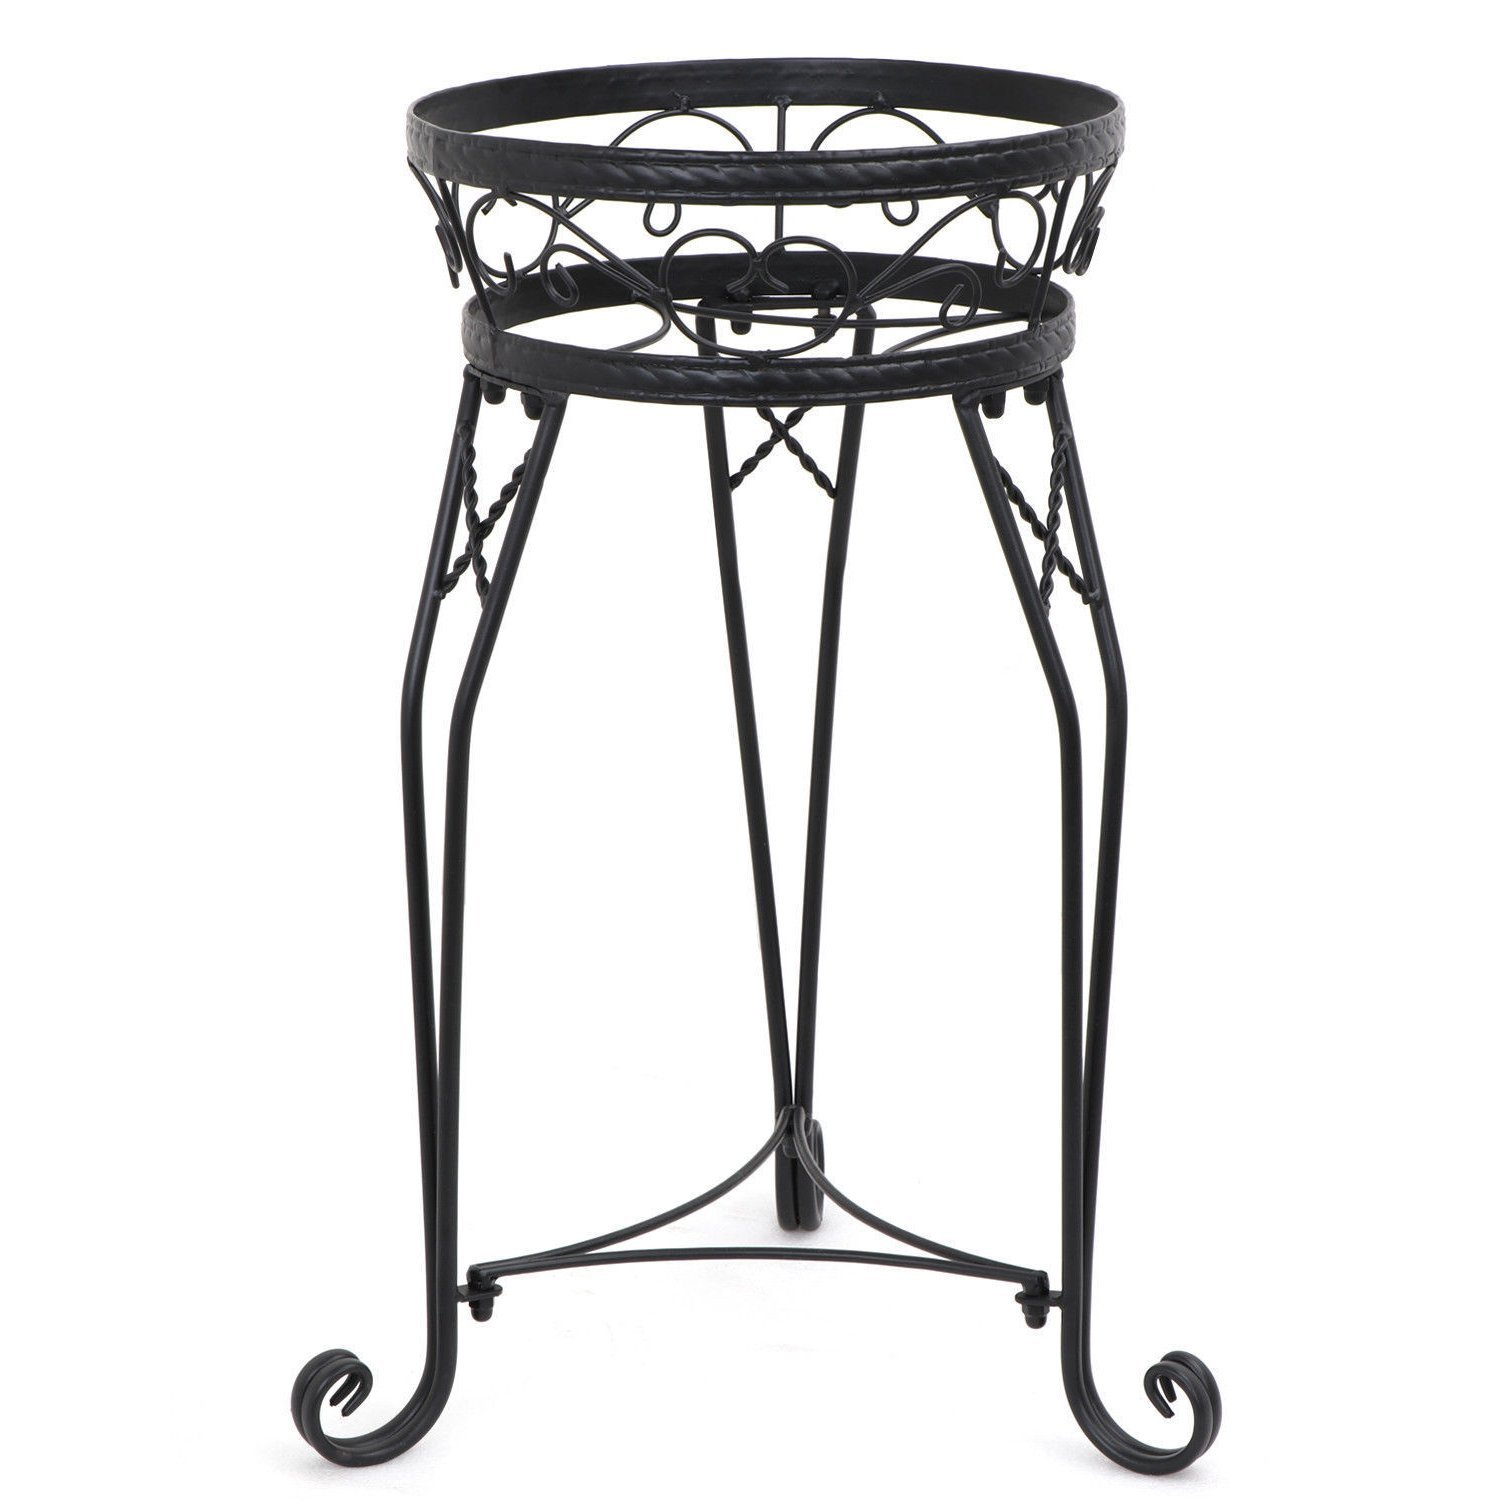 Lightweight Durable Steel 2 Tier Plant Stand Floor Standing Flower Pastoral Style with Spanner | 3 Legs Exquisite Scroll Work Perfect for Living Room Outdoor Indoor Specially Designed Prevent Scratch